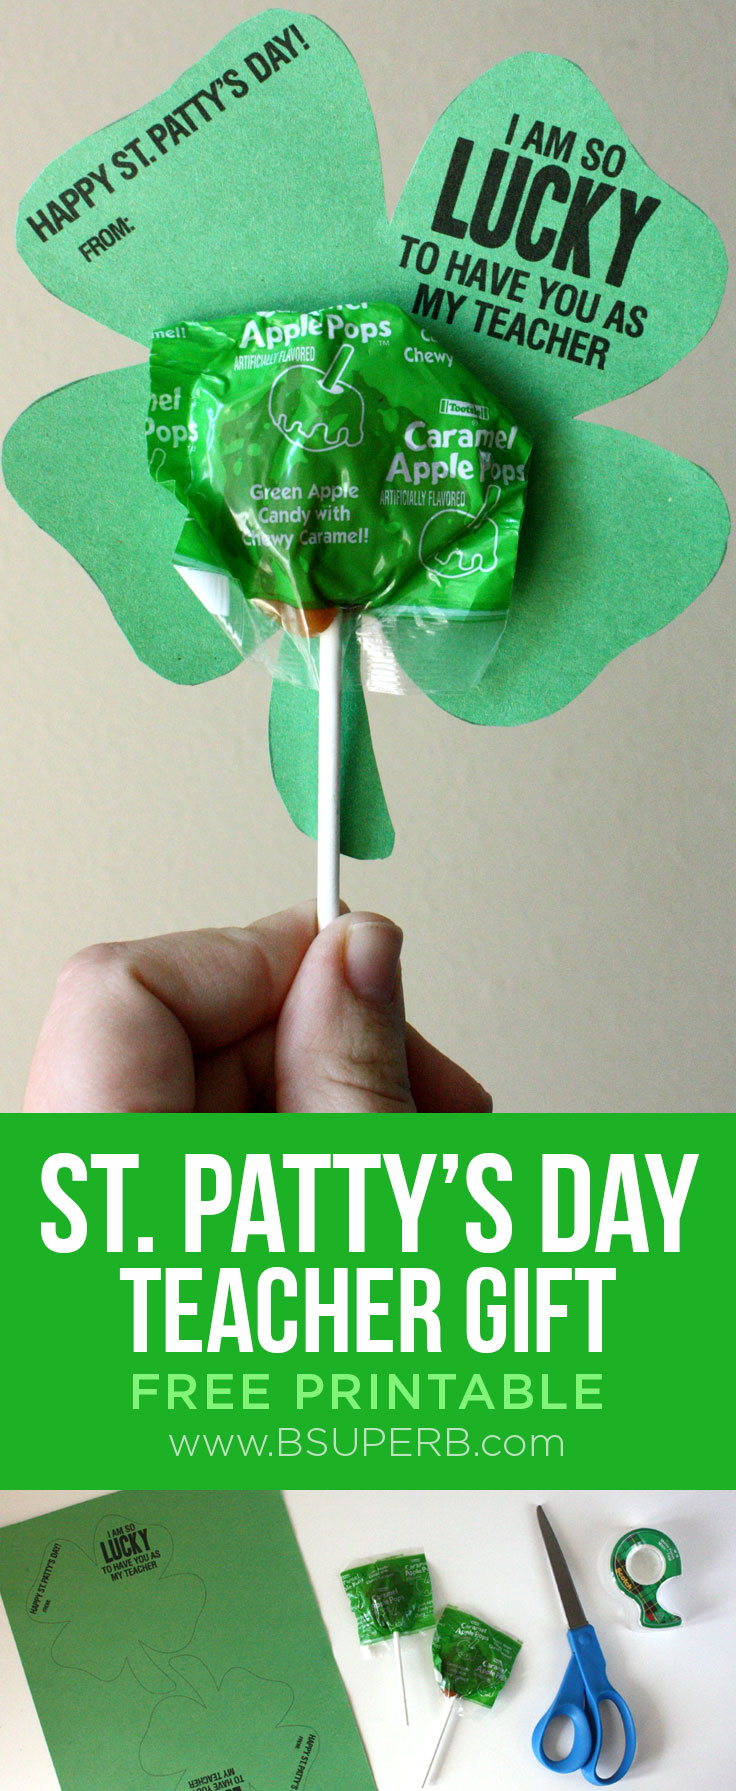 St. Patty's Day Teacher Gift - Free Printable